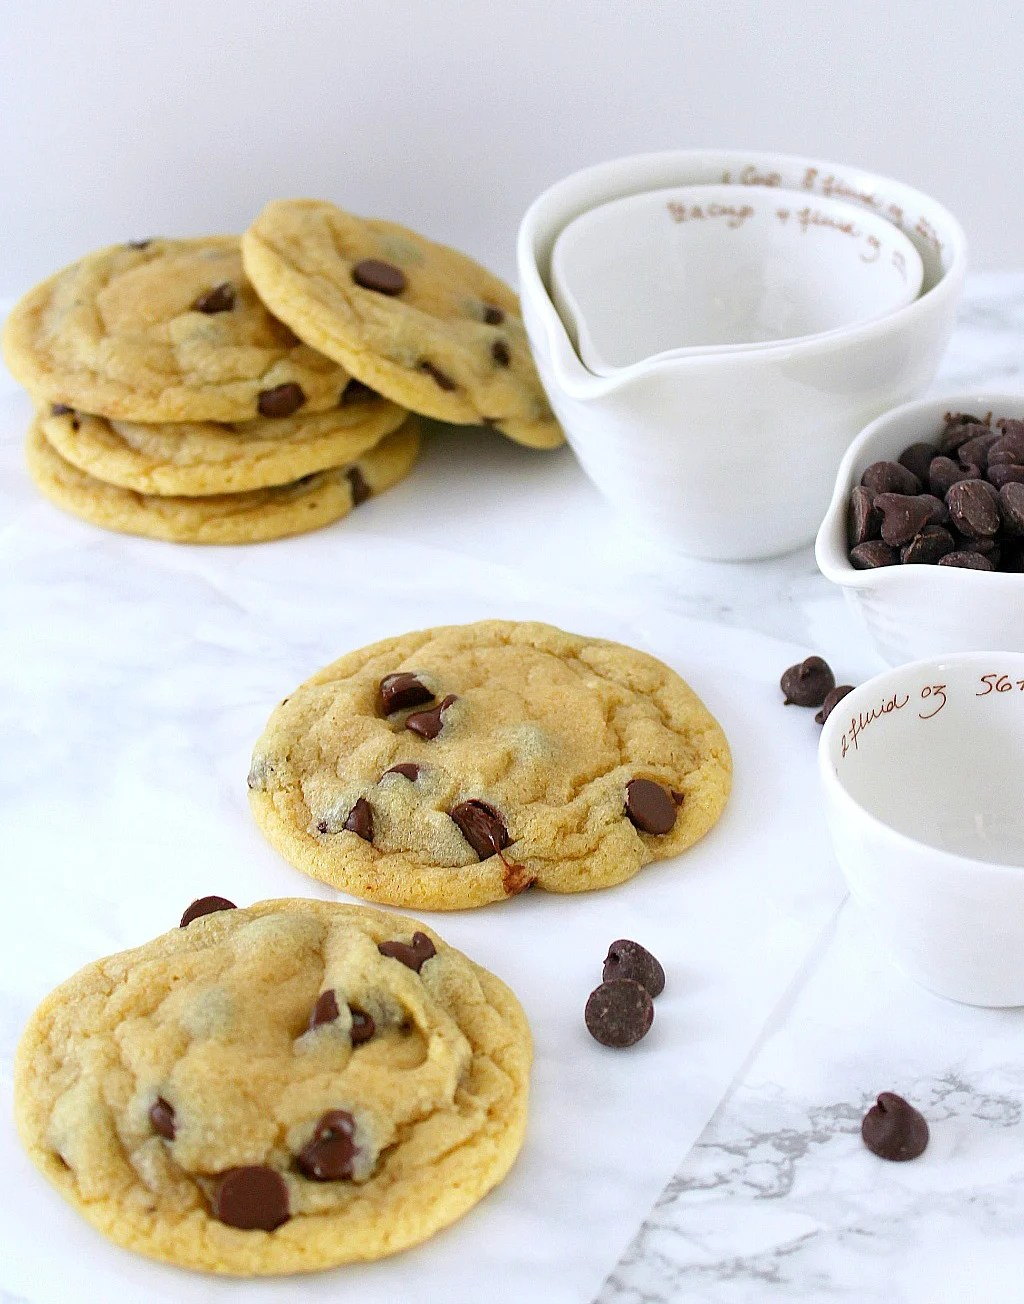 The best chocolate chip cookies are actually within reach. Soft, chewy, perfect everytime. Use melted butter, don't overmix. Huge cookies made just right.